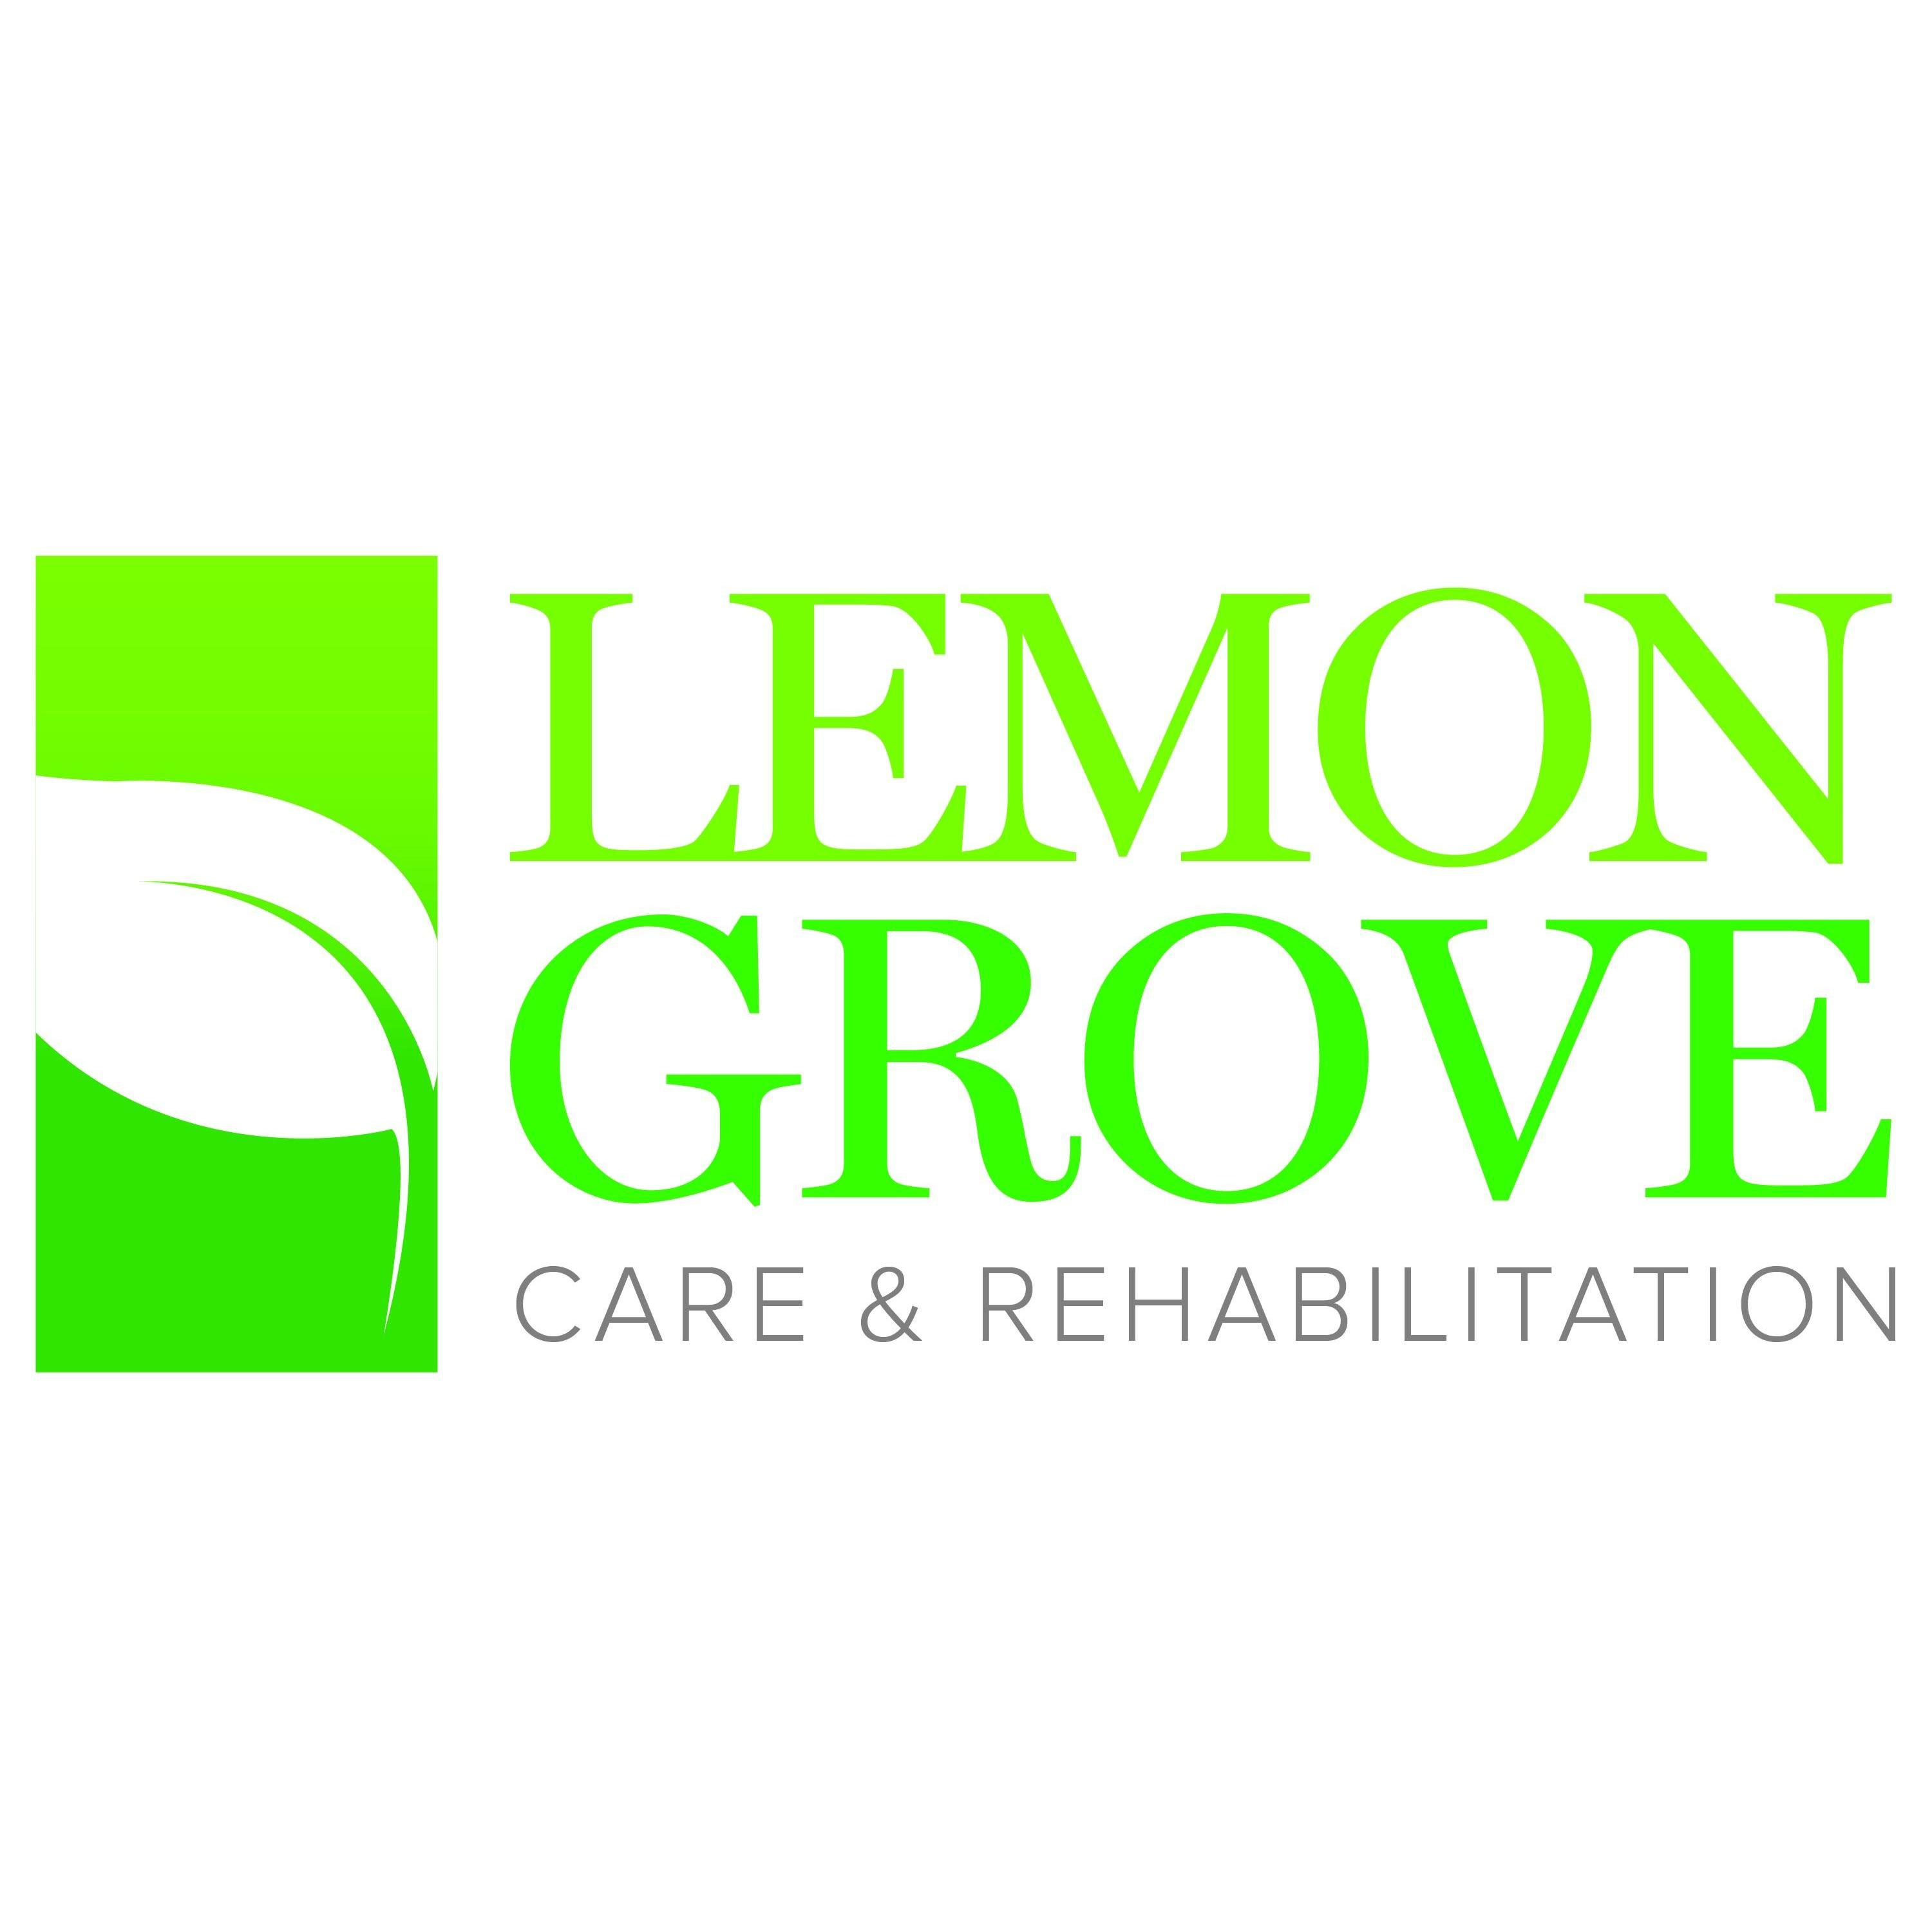 lemon grove single girls The beautiful city of lemon grove has an overabundance of hot singles that are ready and waiting to meet a person that is just like i'm a guy i'm a girl a couple.